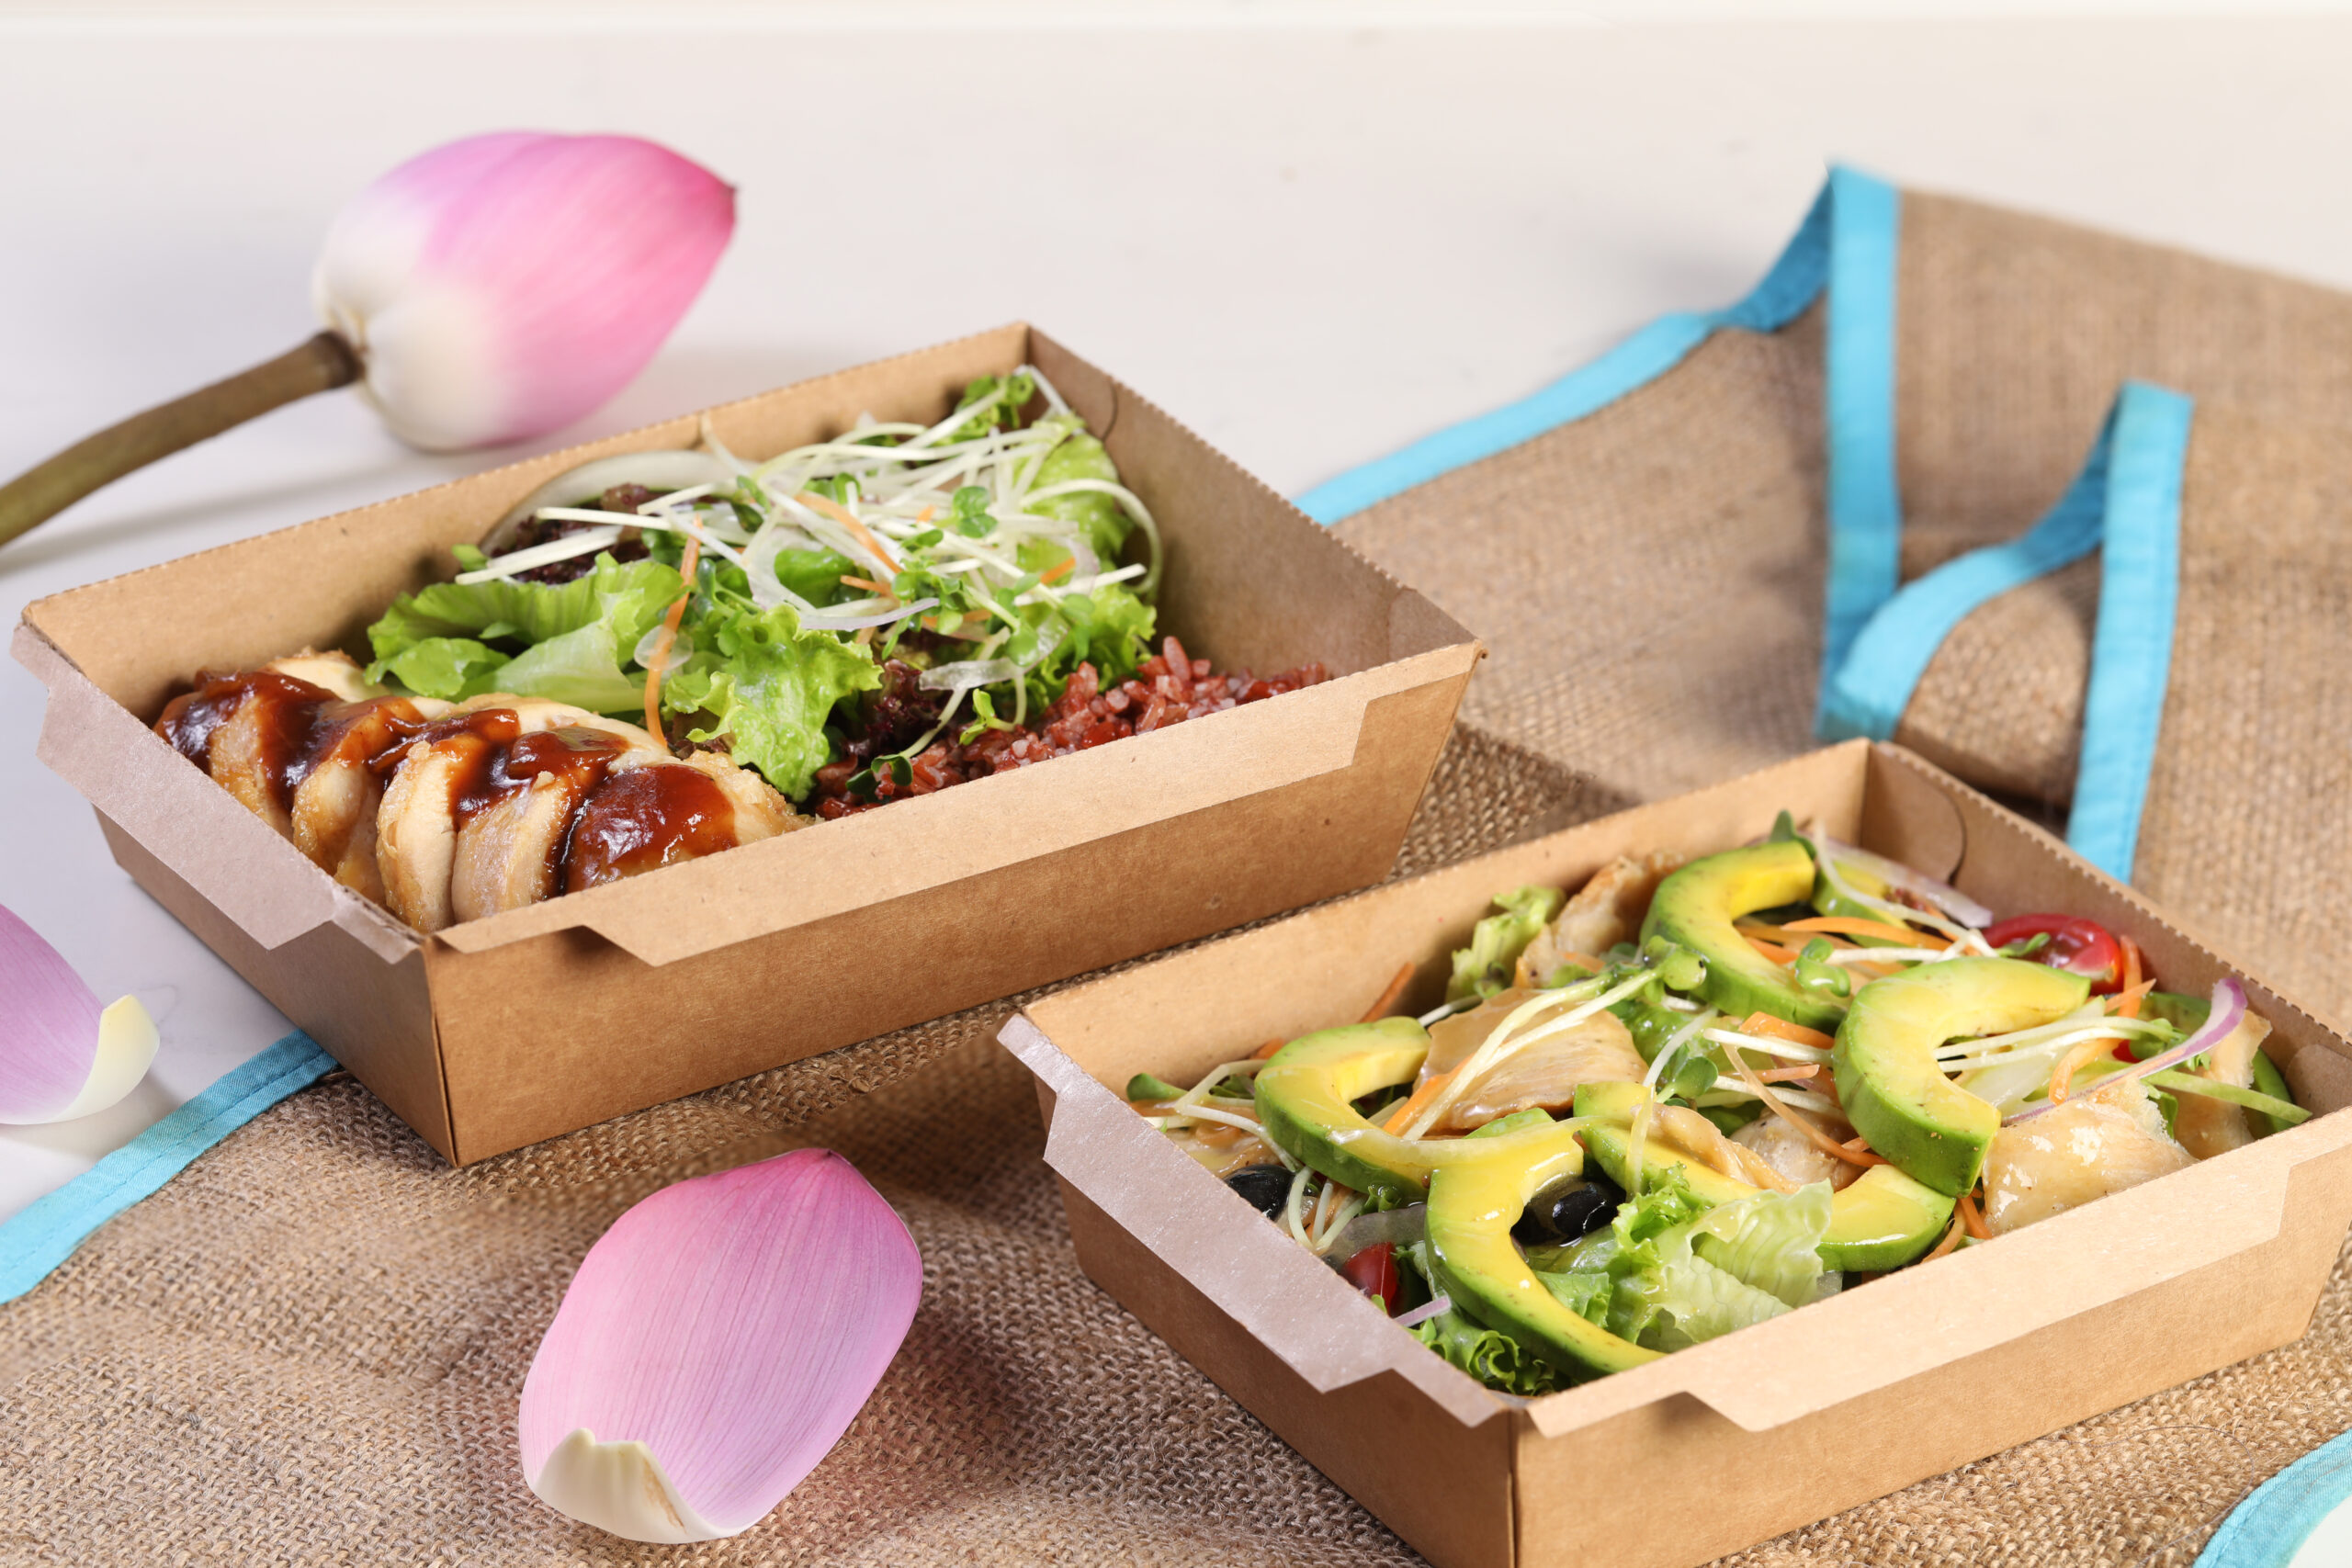 EAT OUT AT HOME – Free ship within 3km